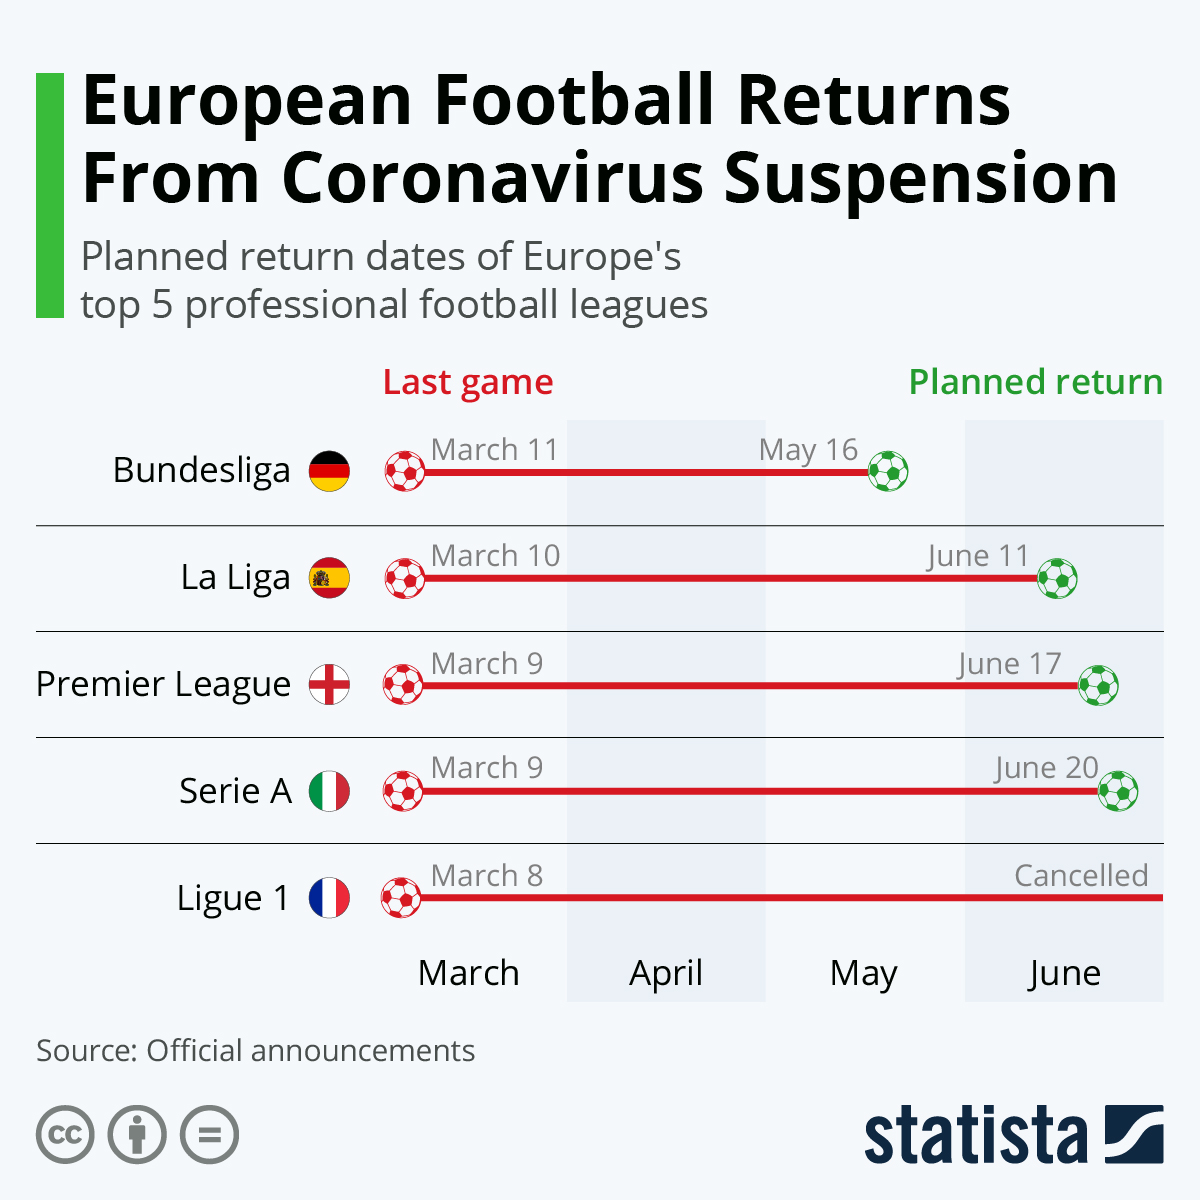 A Look At The Return Of Europe's Top Football Leagues